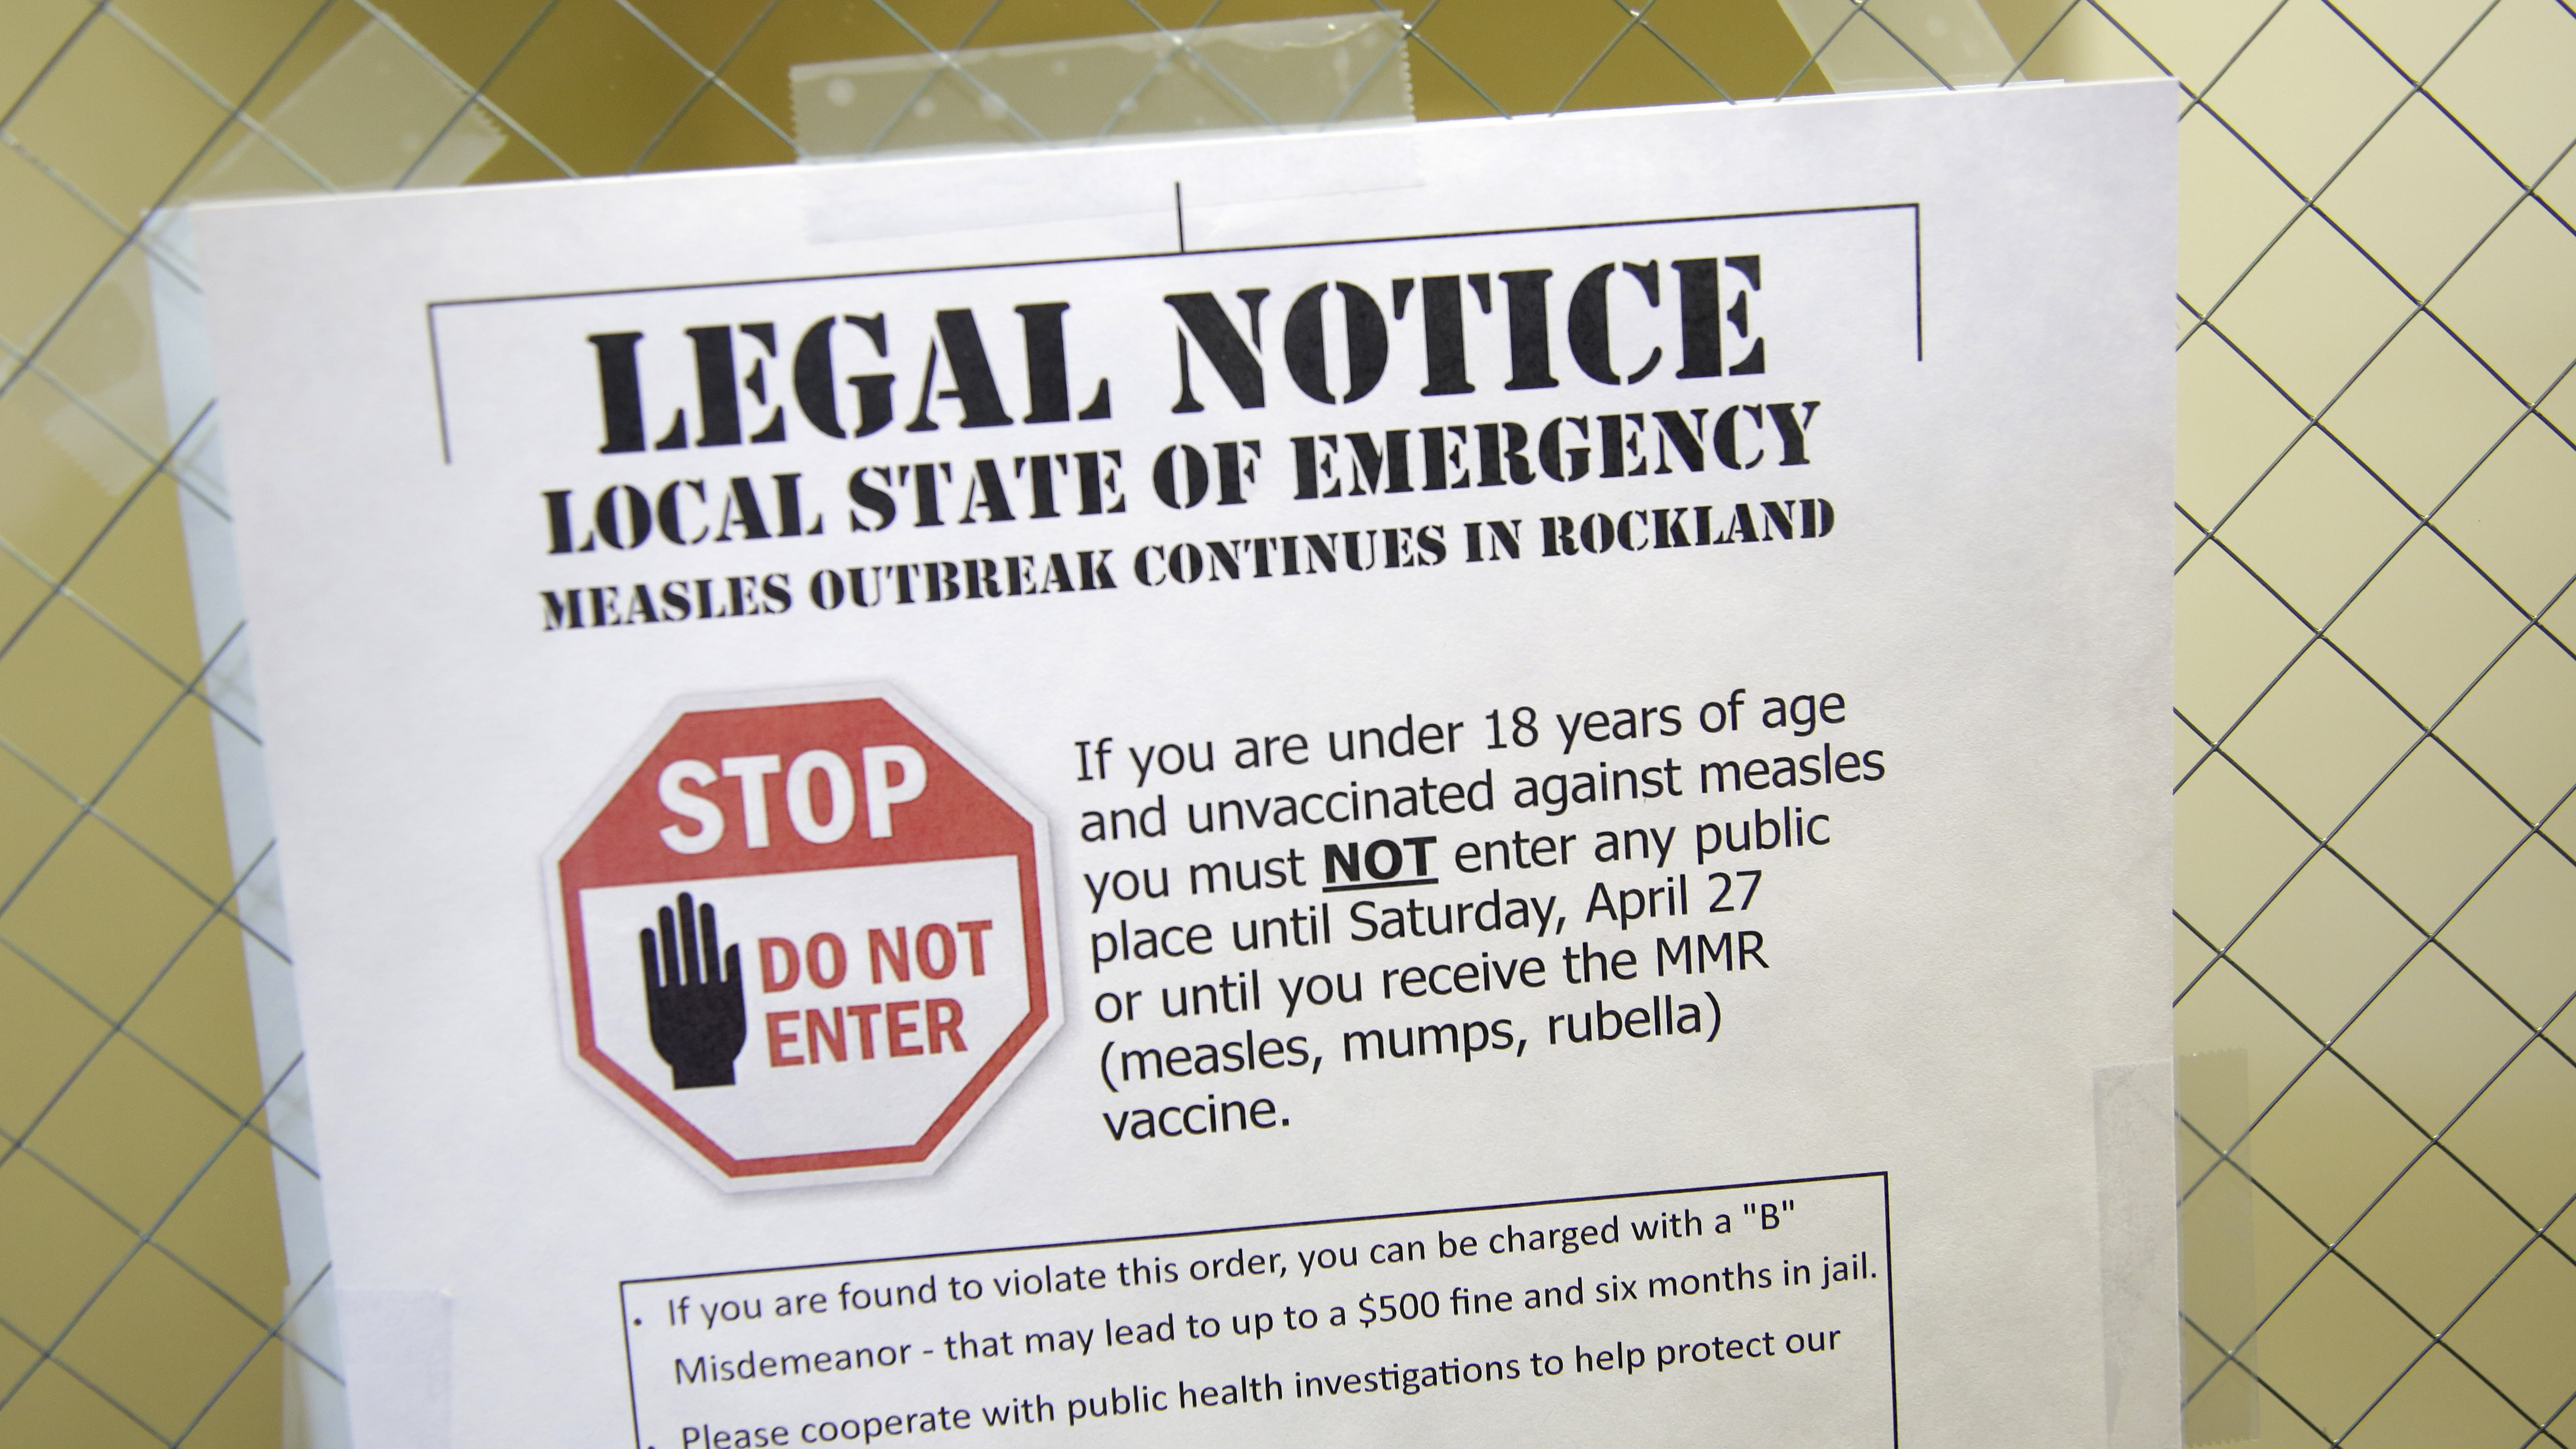 A sign at the Rockland County Health Department in Pomona, N.Y., explains the local state of emergency caused by a measles outbreak.